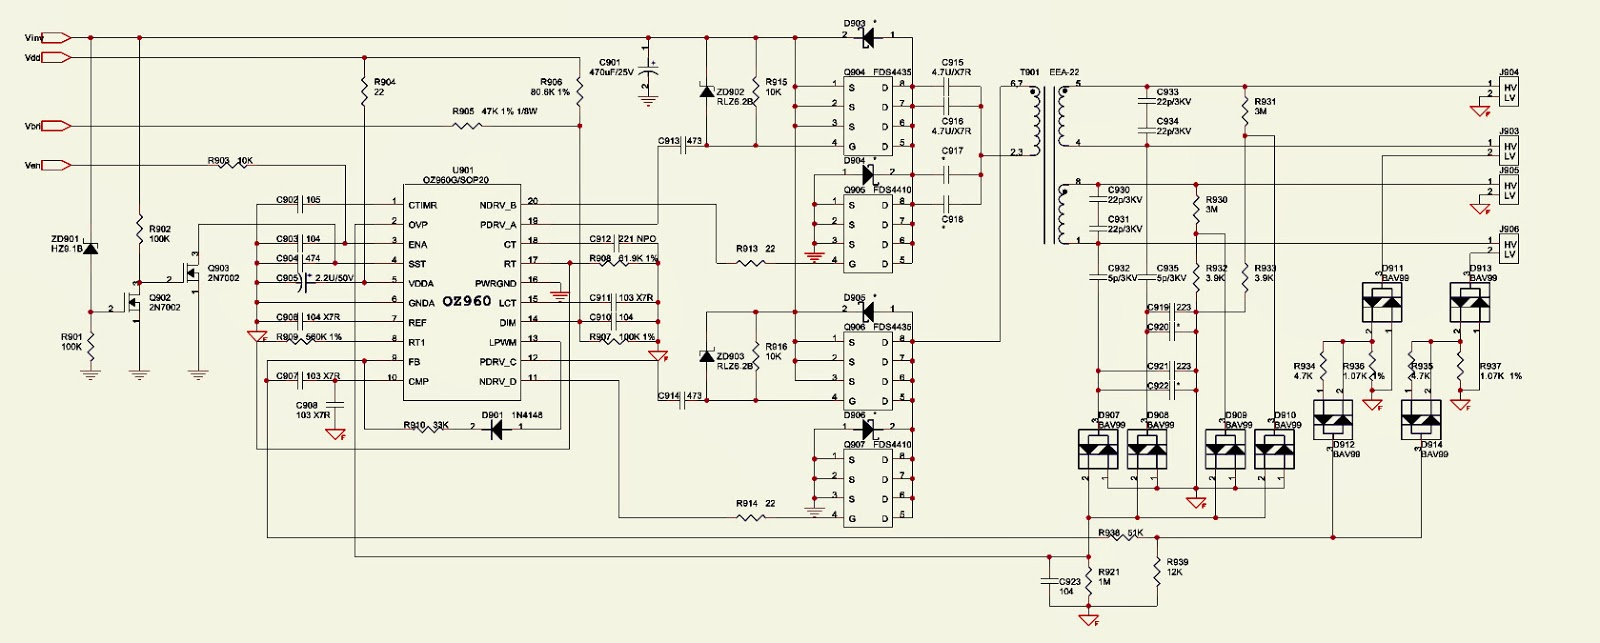 ACER AL1912  MONITOR  SMPS [Power Supply]  SCHEMATIC [Circuit Diagram] | Electro help